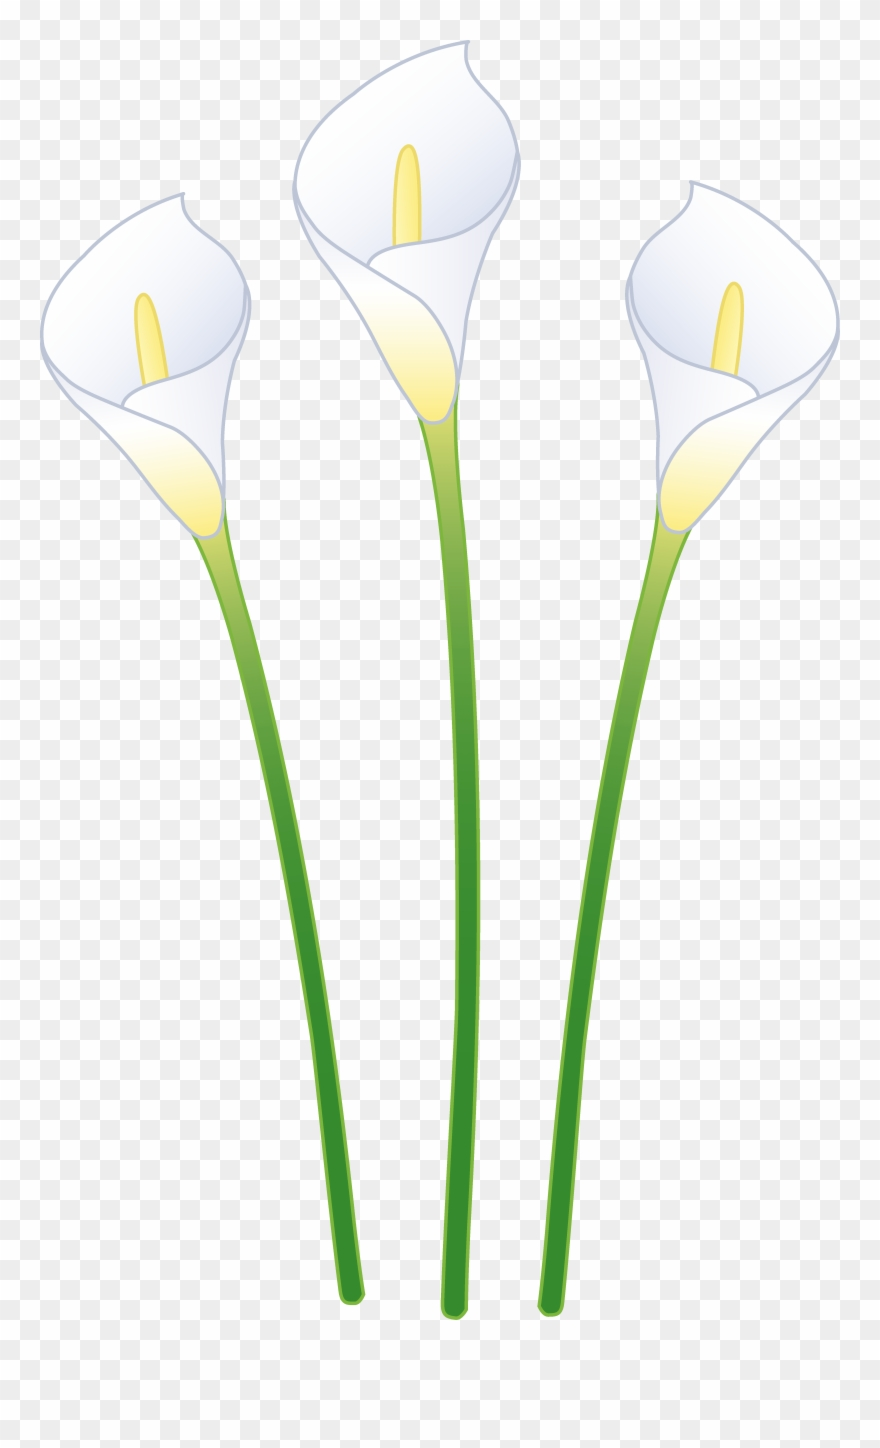 White calla lily clipart clip art library stock Calla Lily Clipart Transparent - Calla Lily Cartoon - Png ... clip art library stock